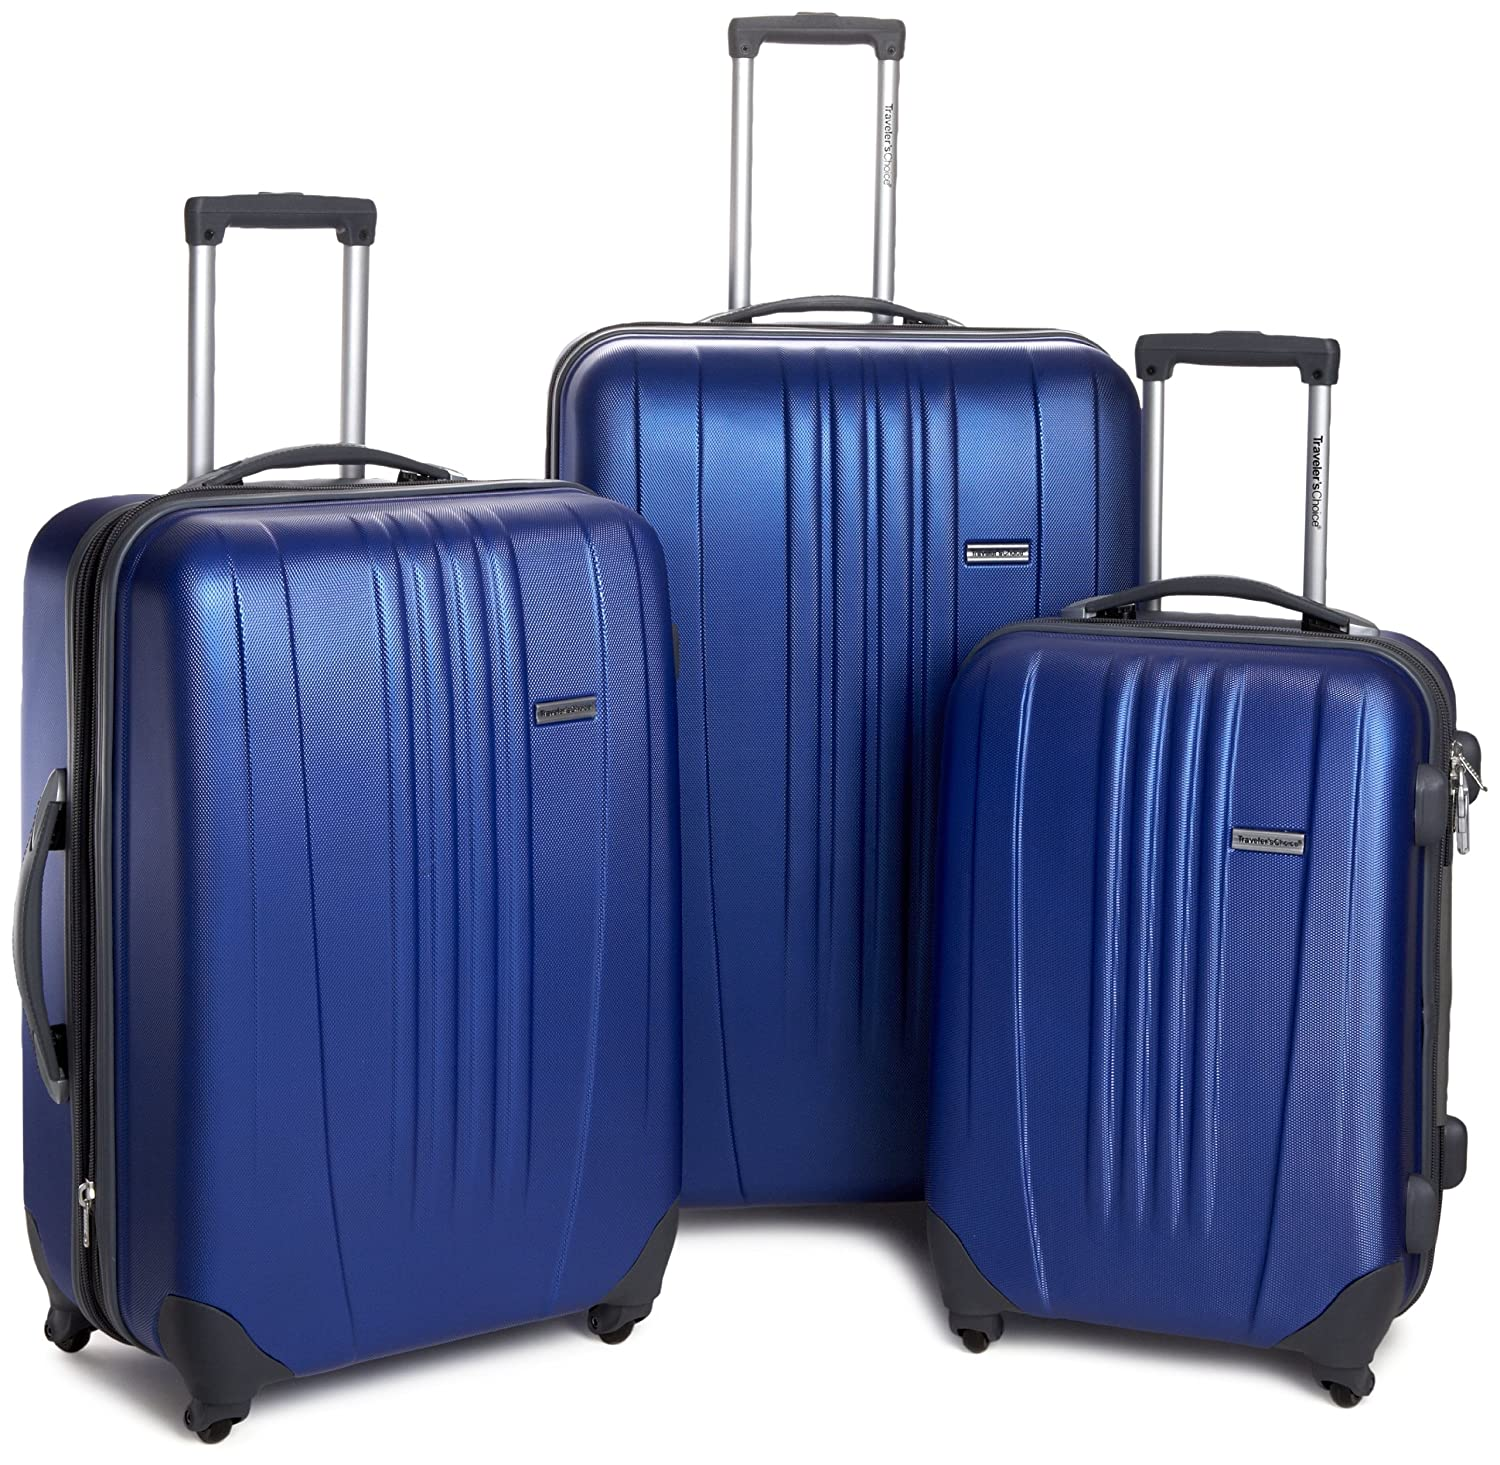 Hard shell travel case - Best Hard Shell Luggage Reviews 2015 Best Luggage Brands